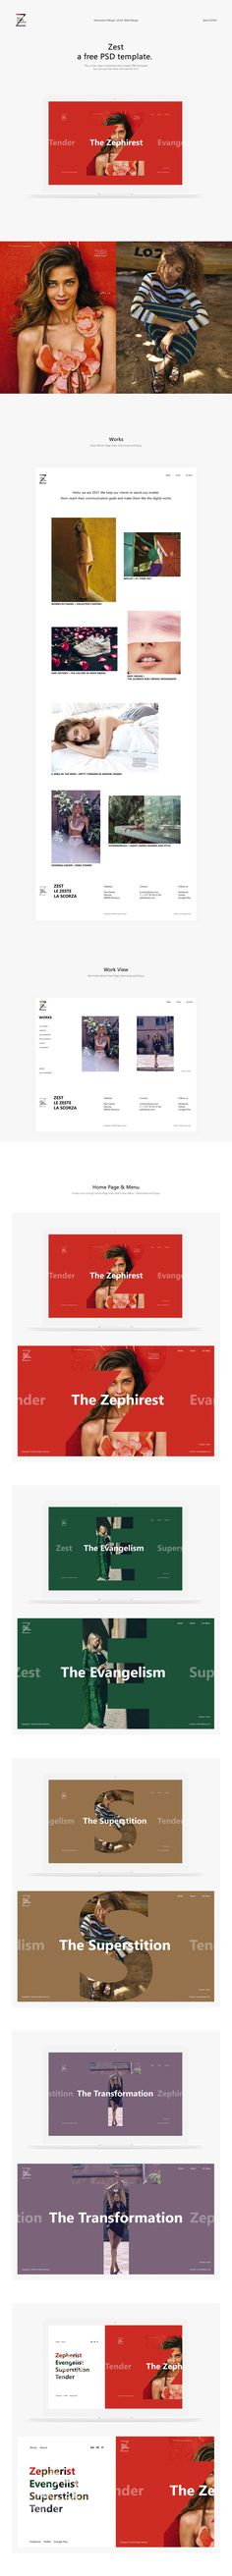 Zest: A free PSD template for photography. This is a new, clean, minimalist and modern UI Kit with Home, Menu, Works and Work View Pages . You can see how clear and colorful it is!